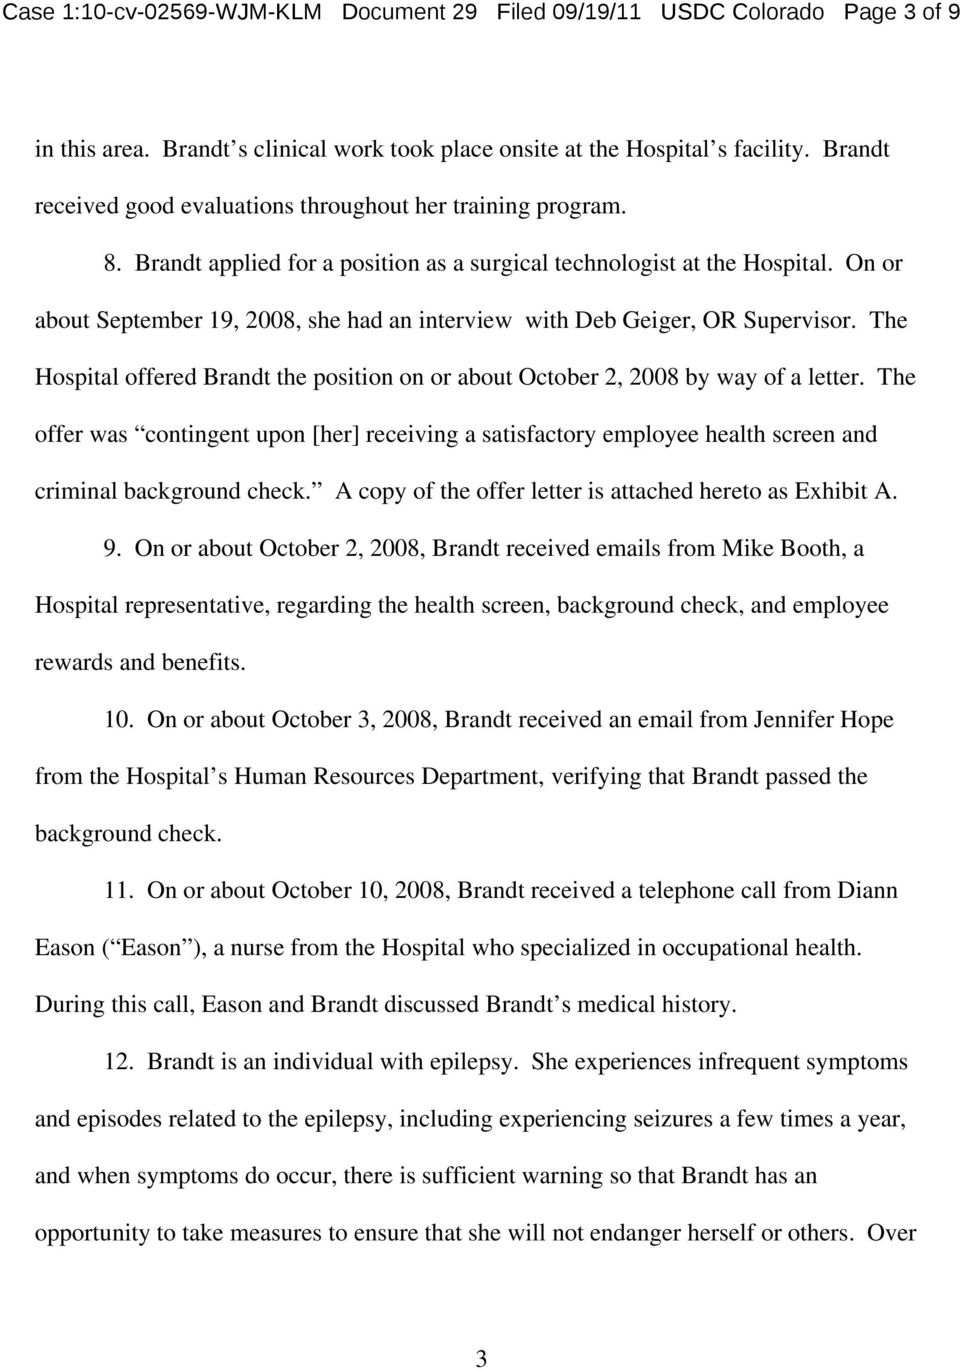 On or about September 19, 2008, she had an interview with Deb Geiger, OR Supervisor. The Hospital offered Brandt the position on or about October 2, 2008 by way of a letter.